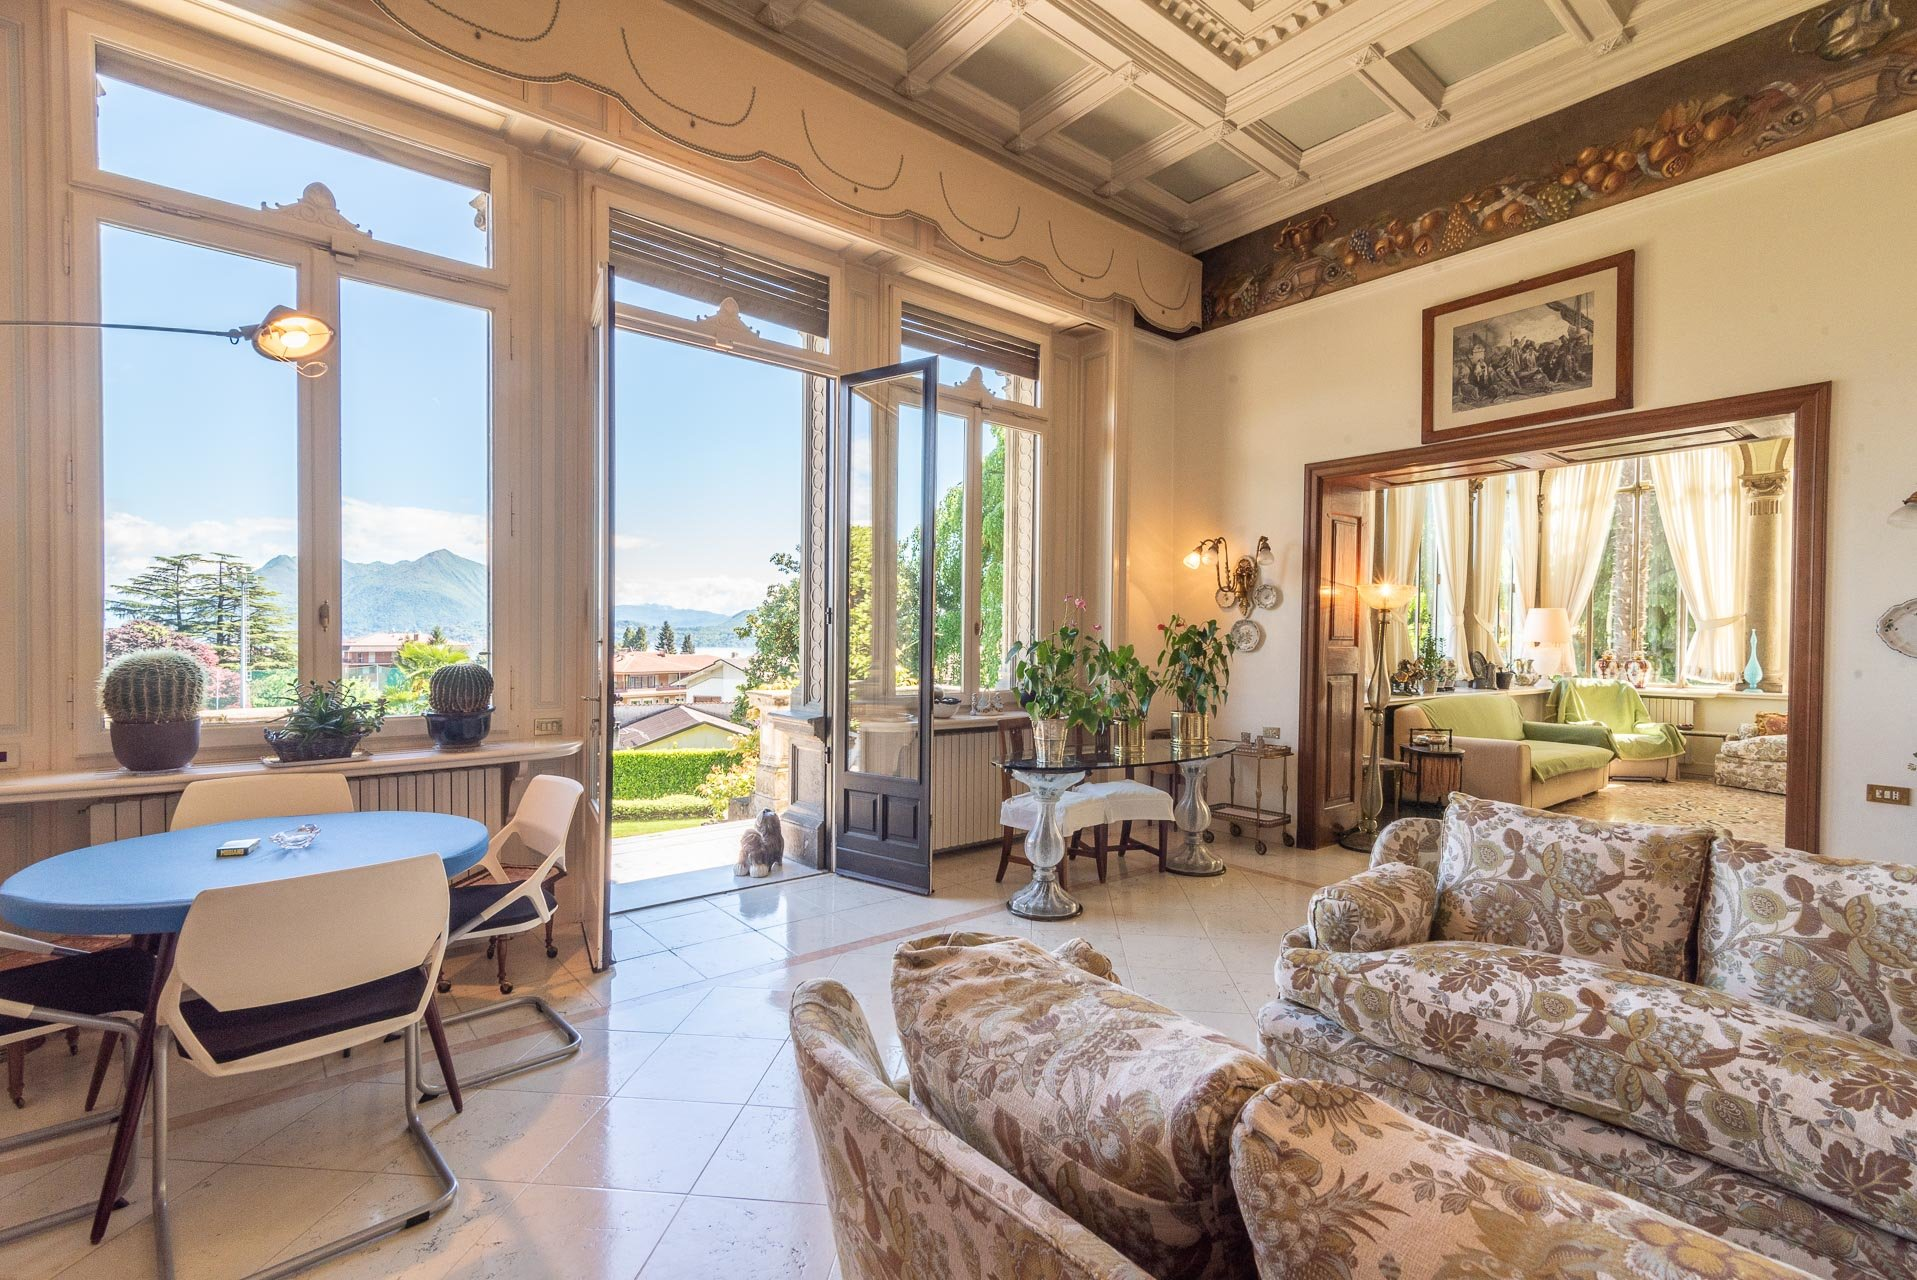 Luxurious apartment for sale in a villa in Stresa - elegant salon